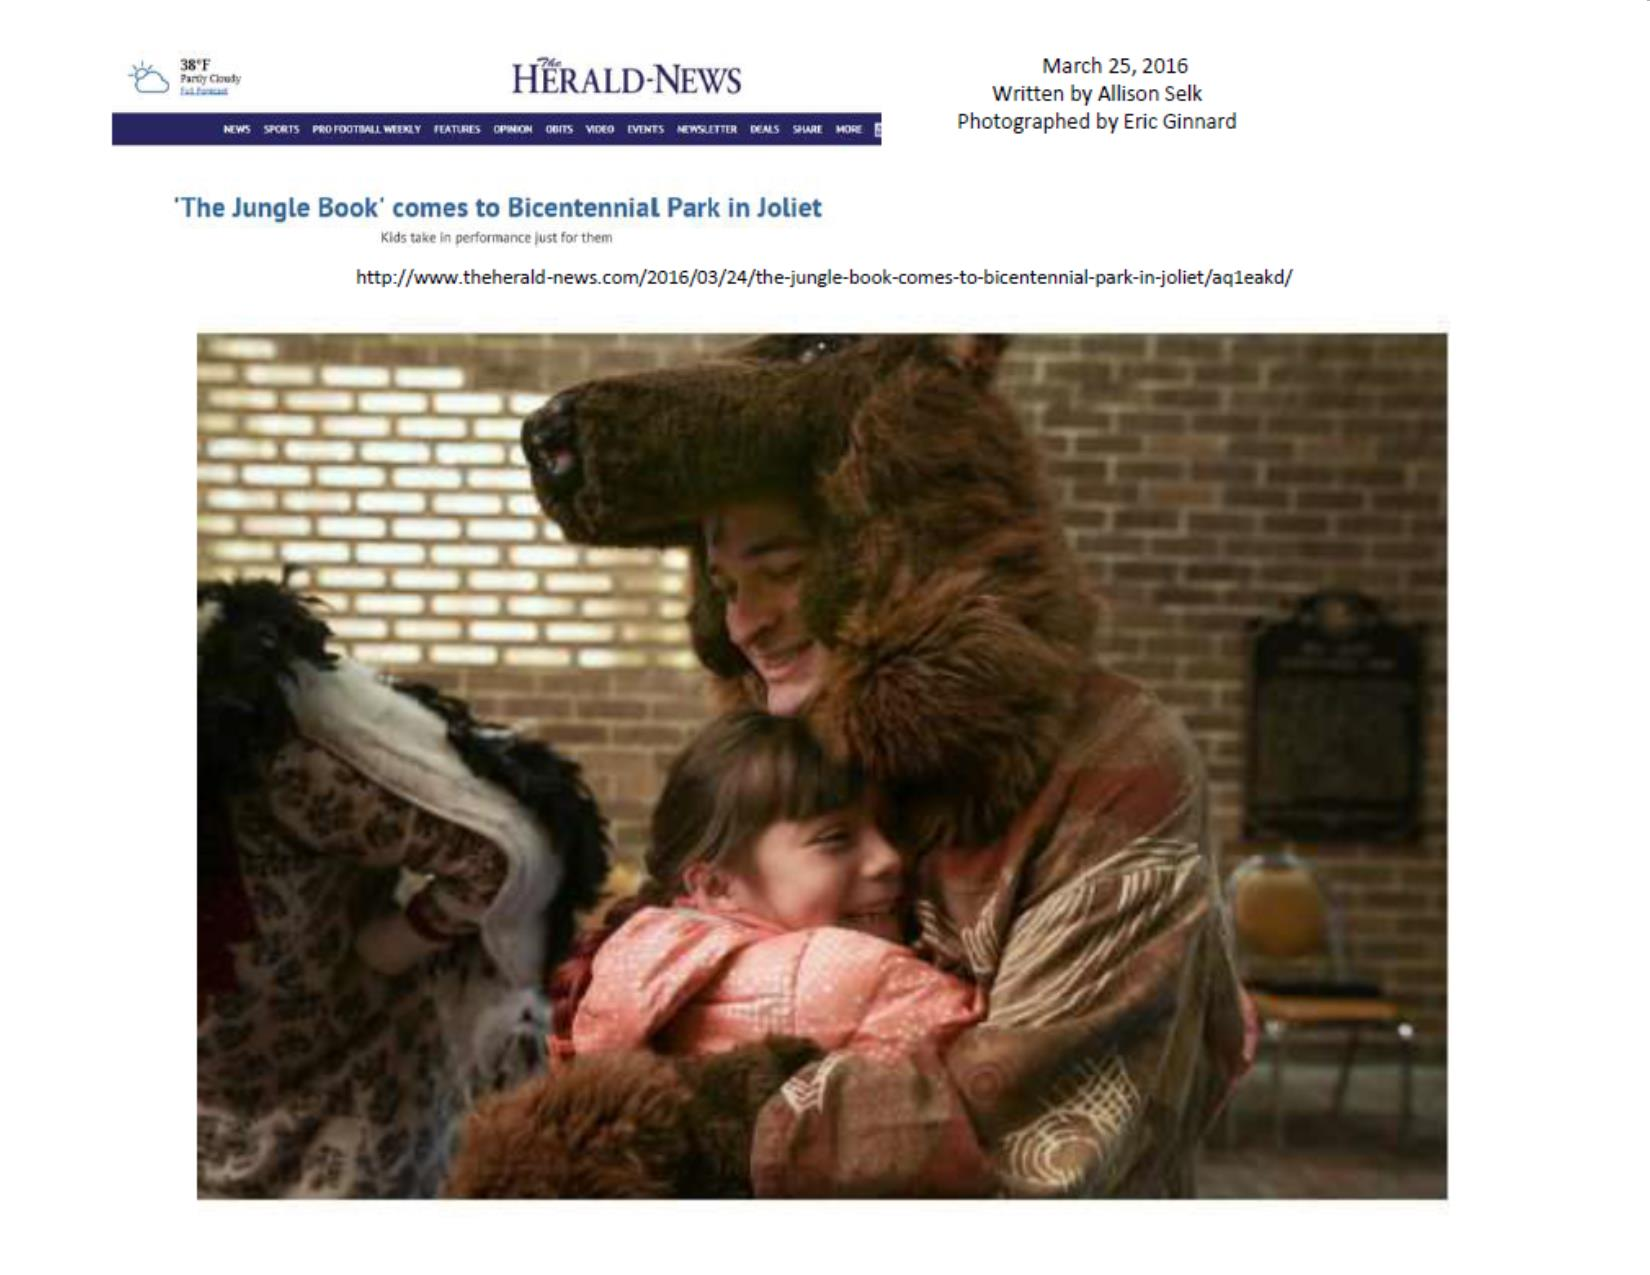 THE JUNGLE BOOK makes The Joliet Herald-News cover March 25